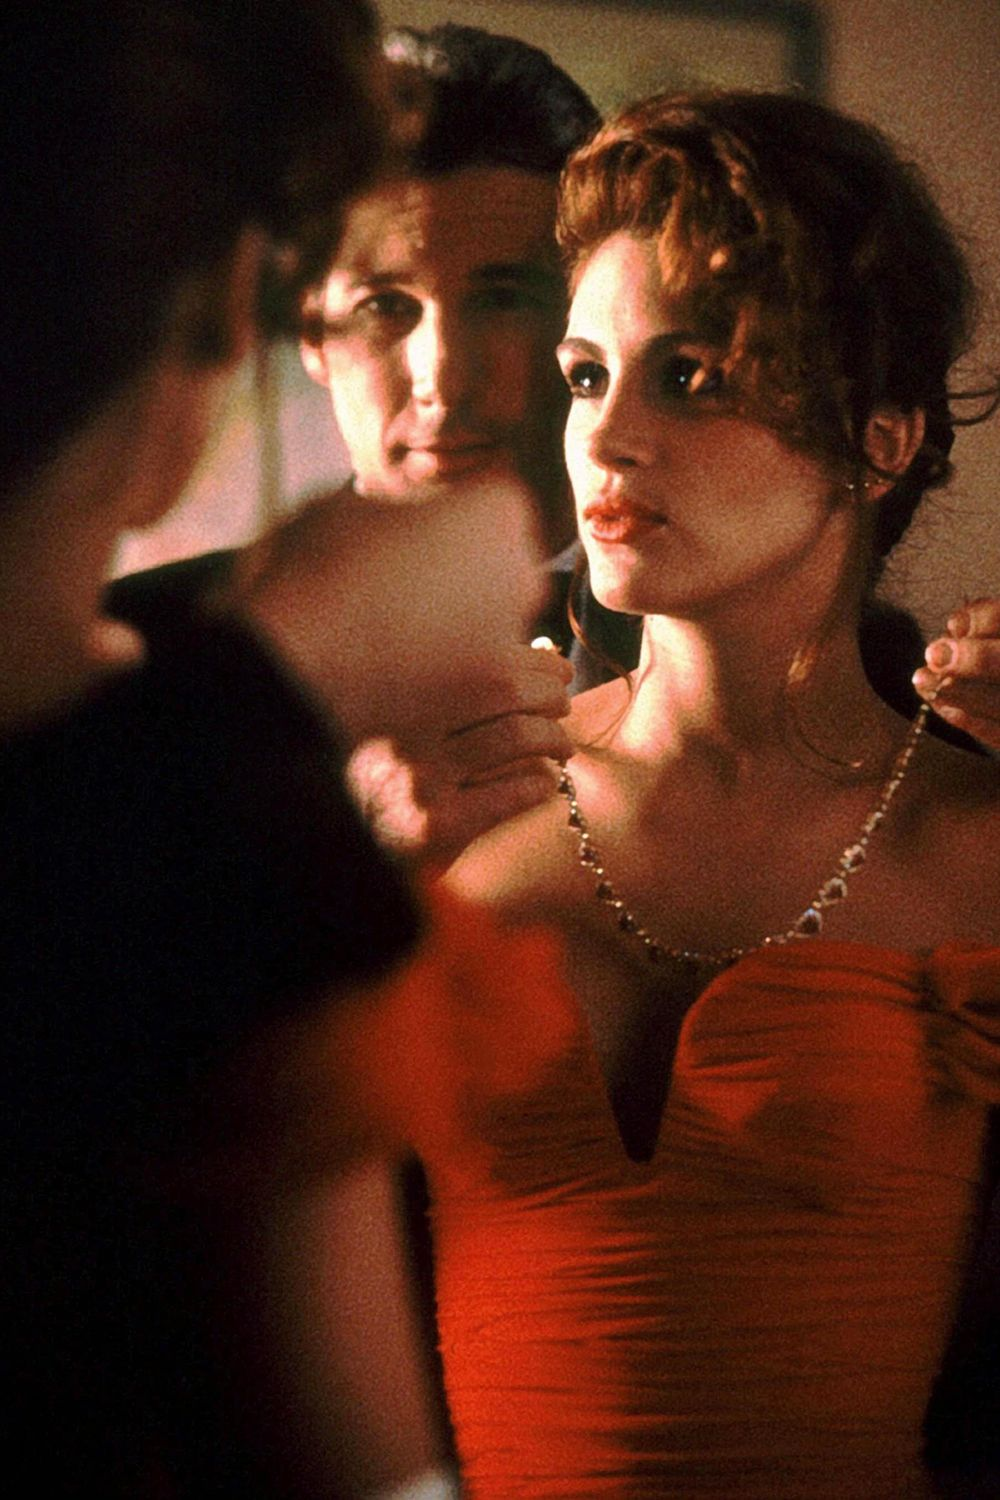 Pretty Woman (1990) The movie that made Julia Roberts a star (and earned her a best actress Oscar nom). Vivian (Roberts) is a Hollywood prostitute hired as an escort by a wealthy businessman (Richard Gere), and over their week of social events and parties together, the two develop an unlikely love.